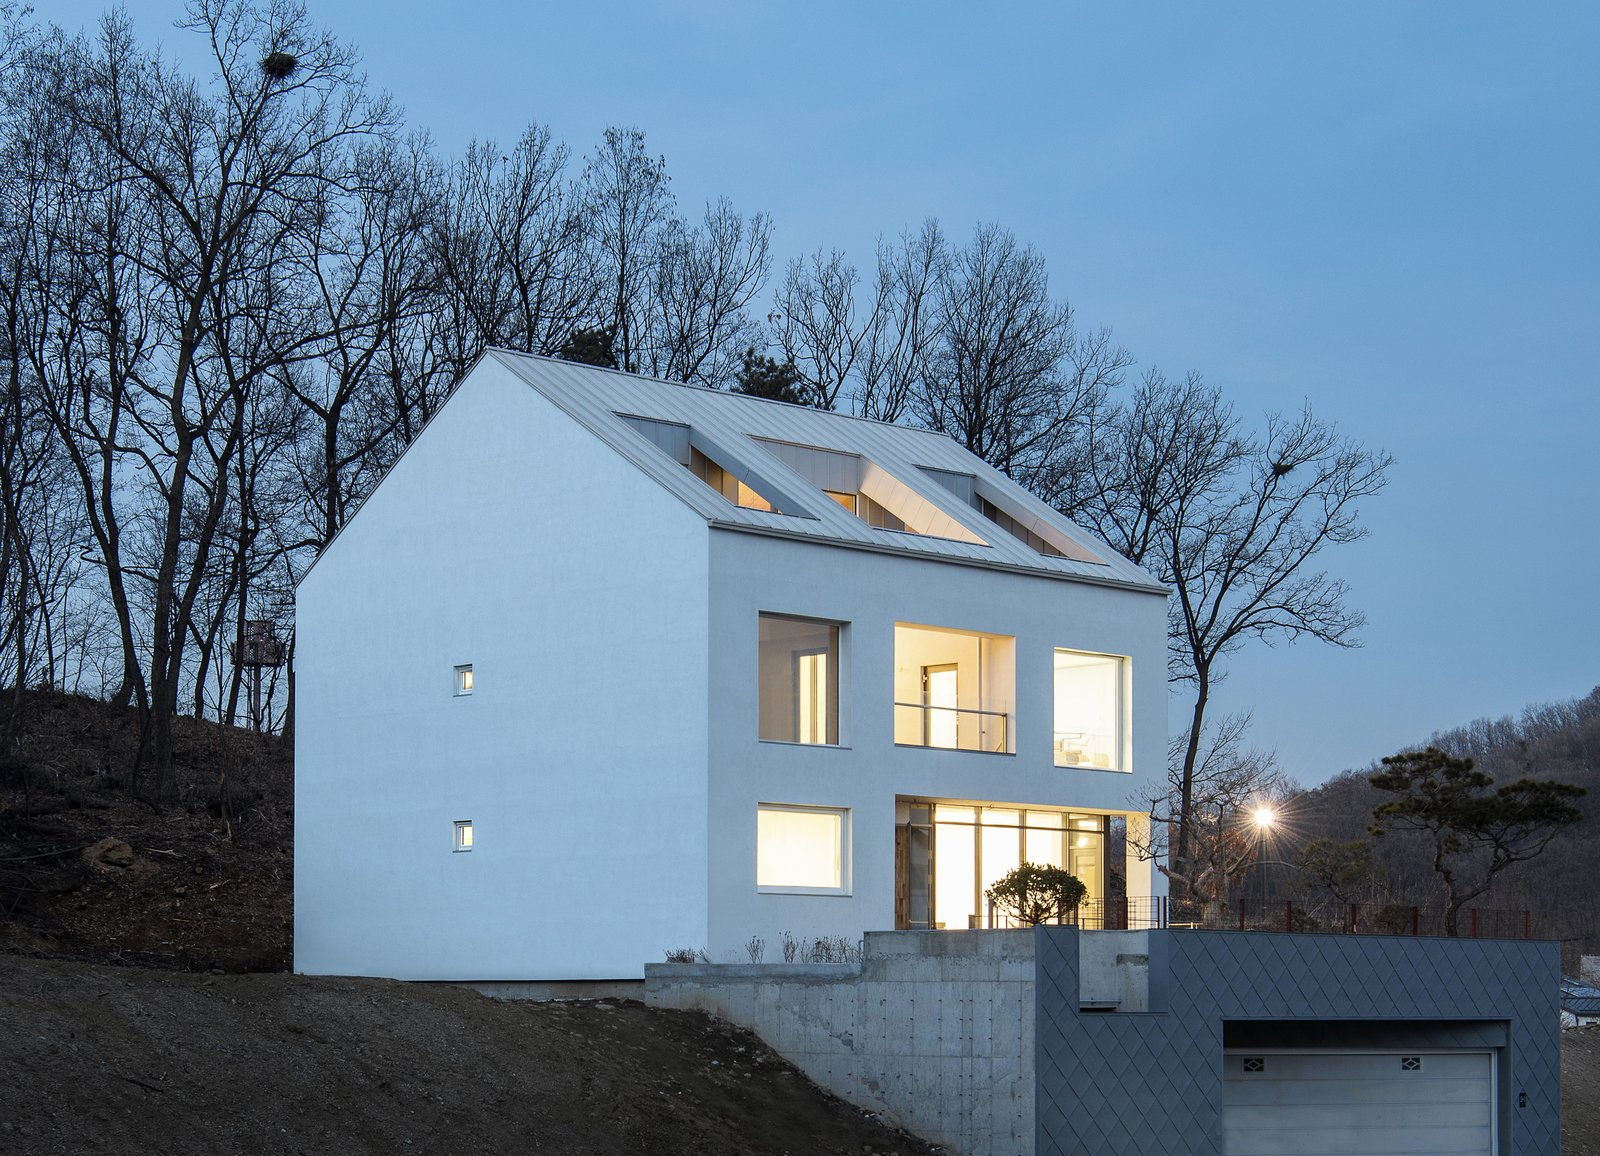 Back Yard, Exterior, Stucco Siding Material, and House Building Type Main Image  A House by Chang Kyu Lee